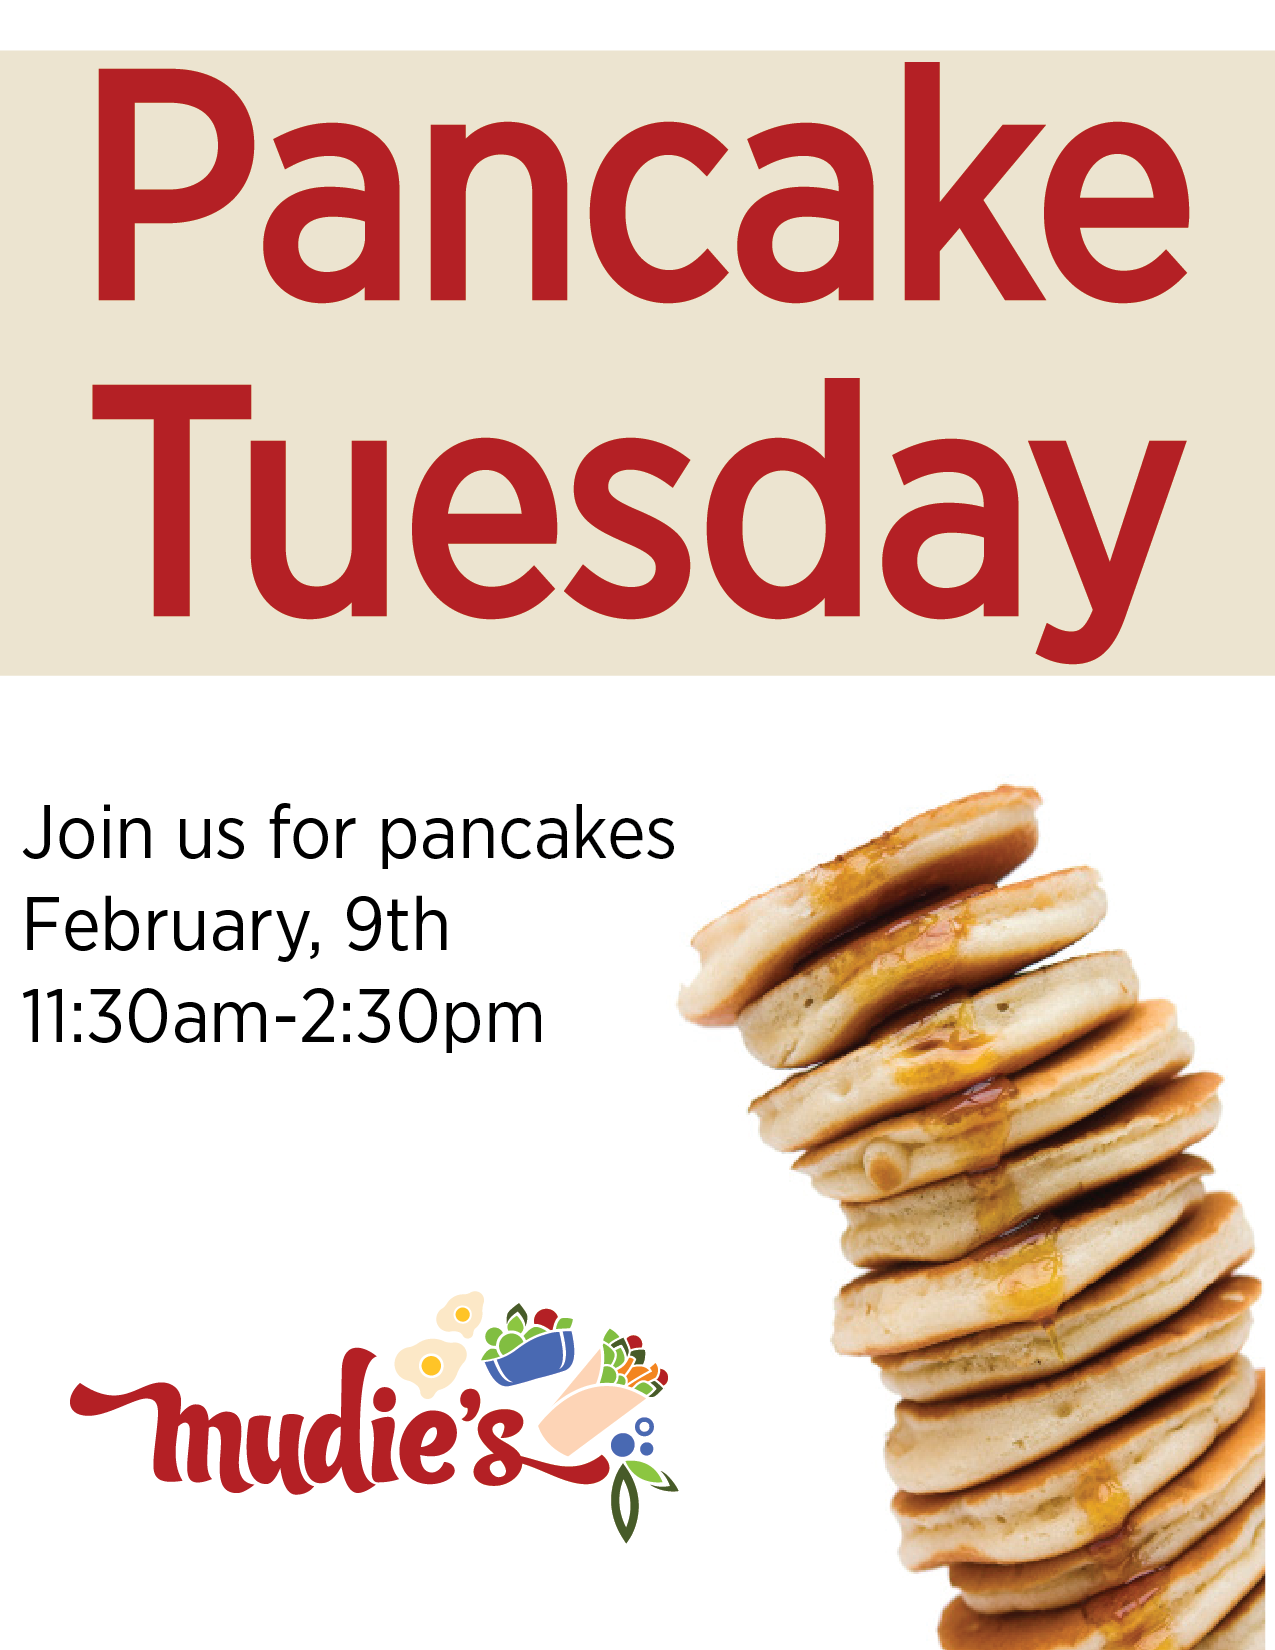 Pancake Tuesday February 9th at Mudies 11:30am-2:30pm